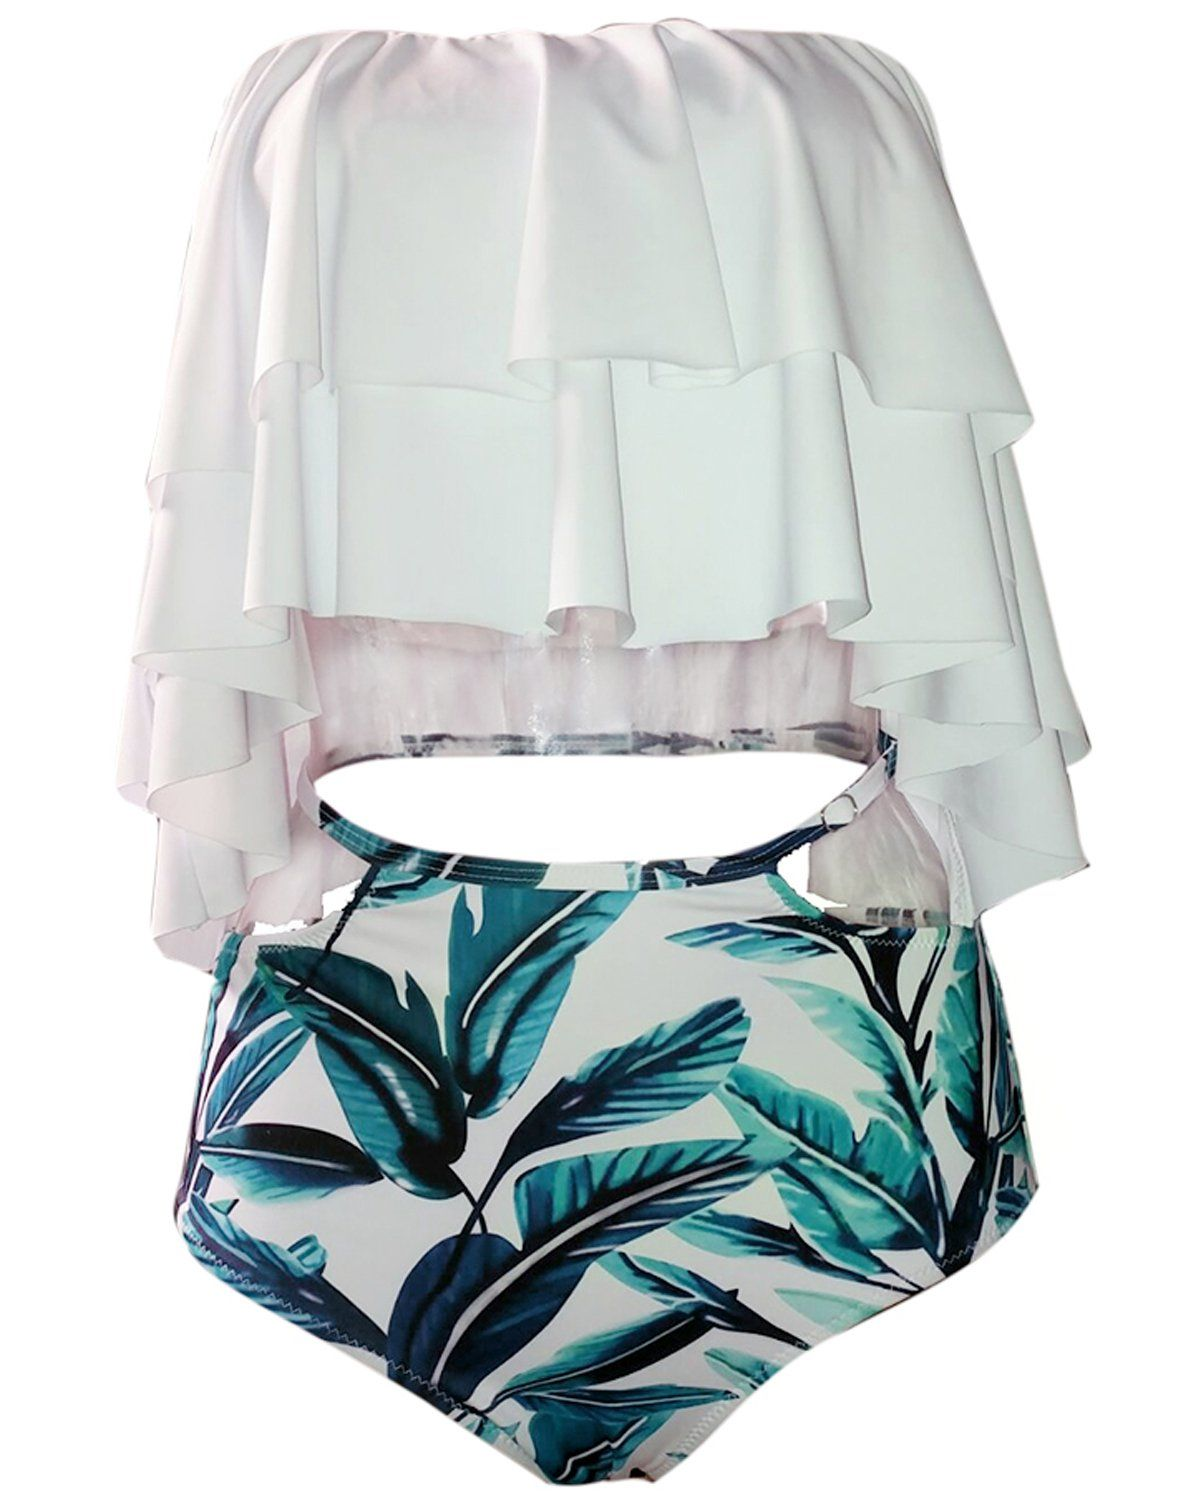 9e56627da Tempt Me Women Two Piece Off Shoulder Ruffled Flounce Crop Bikini Top With  Print Cut Out Bottoms White L